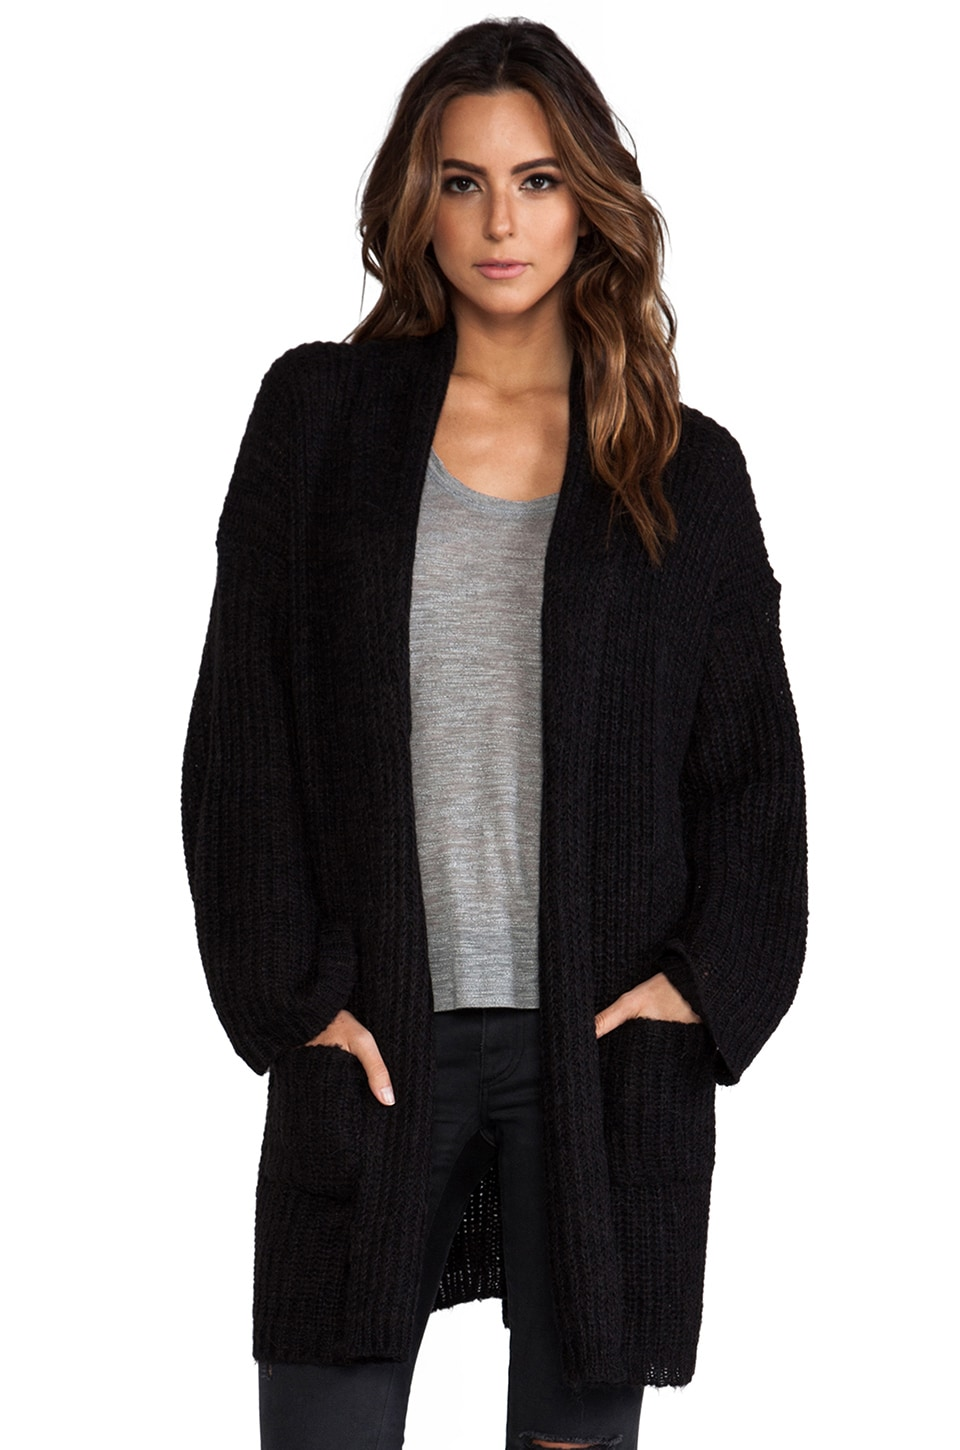 NEUW Odetie Cardigan in Black